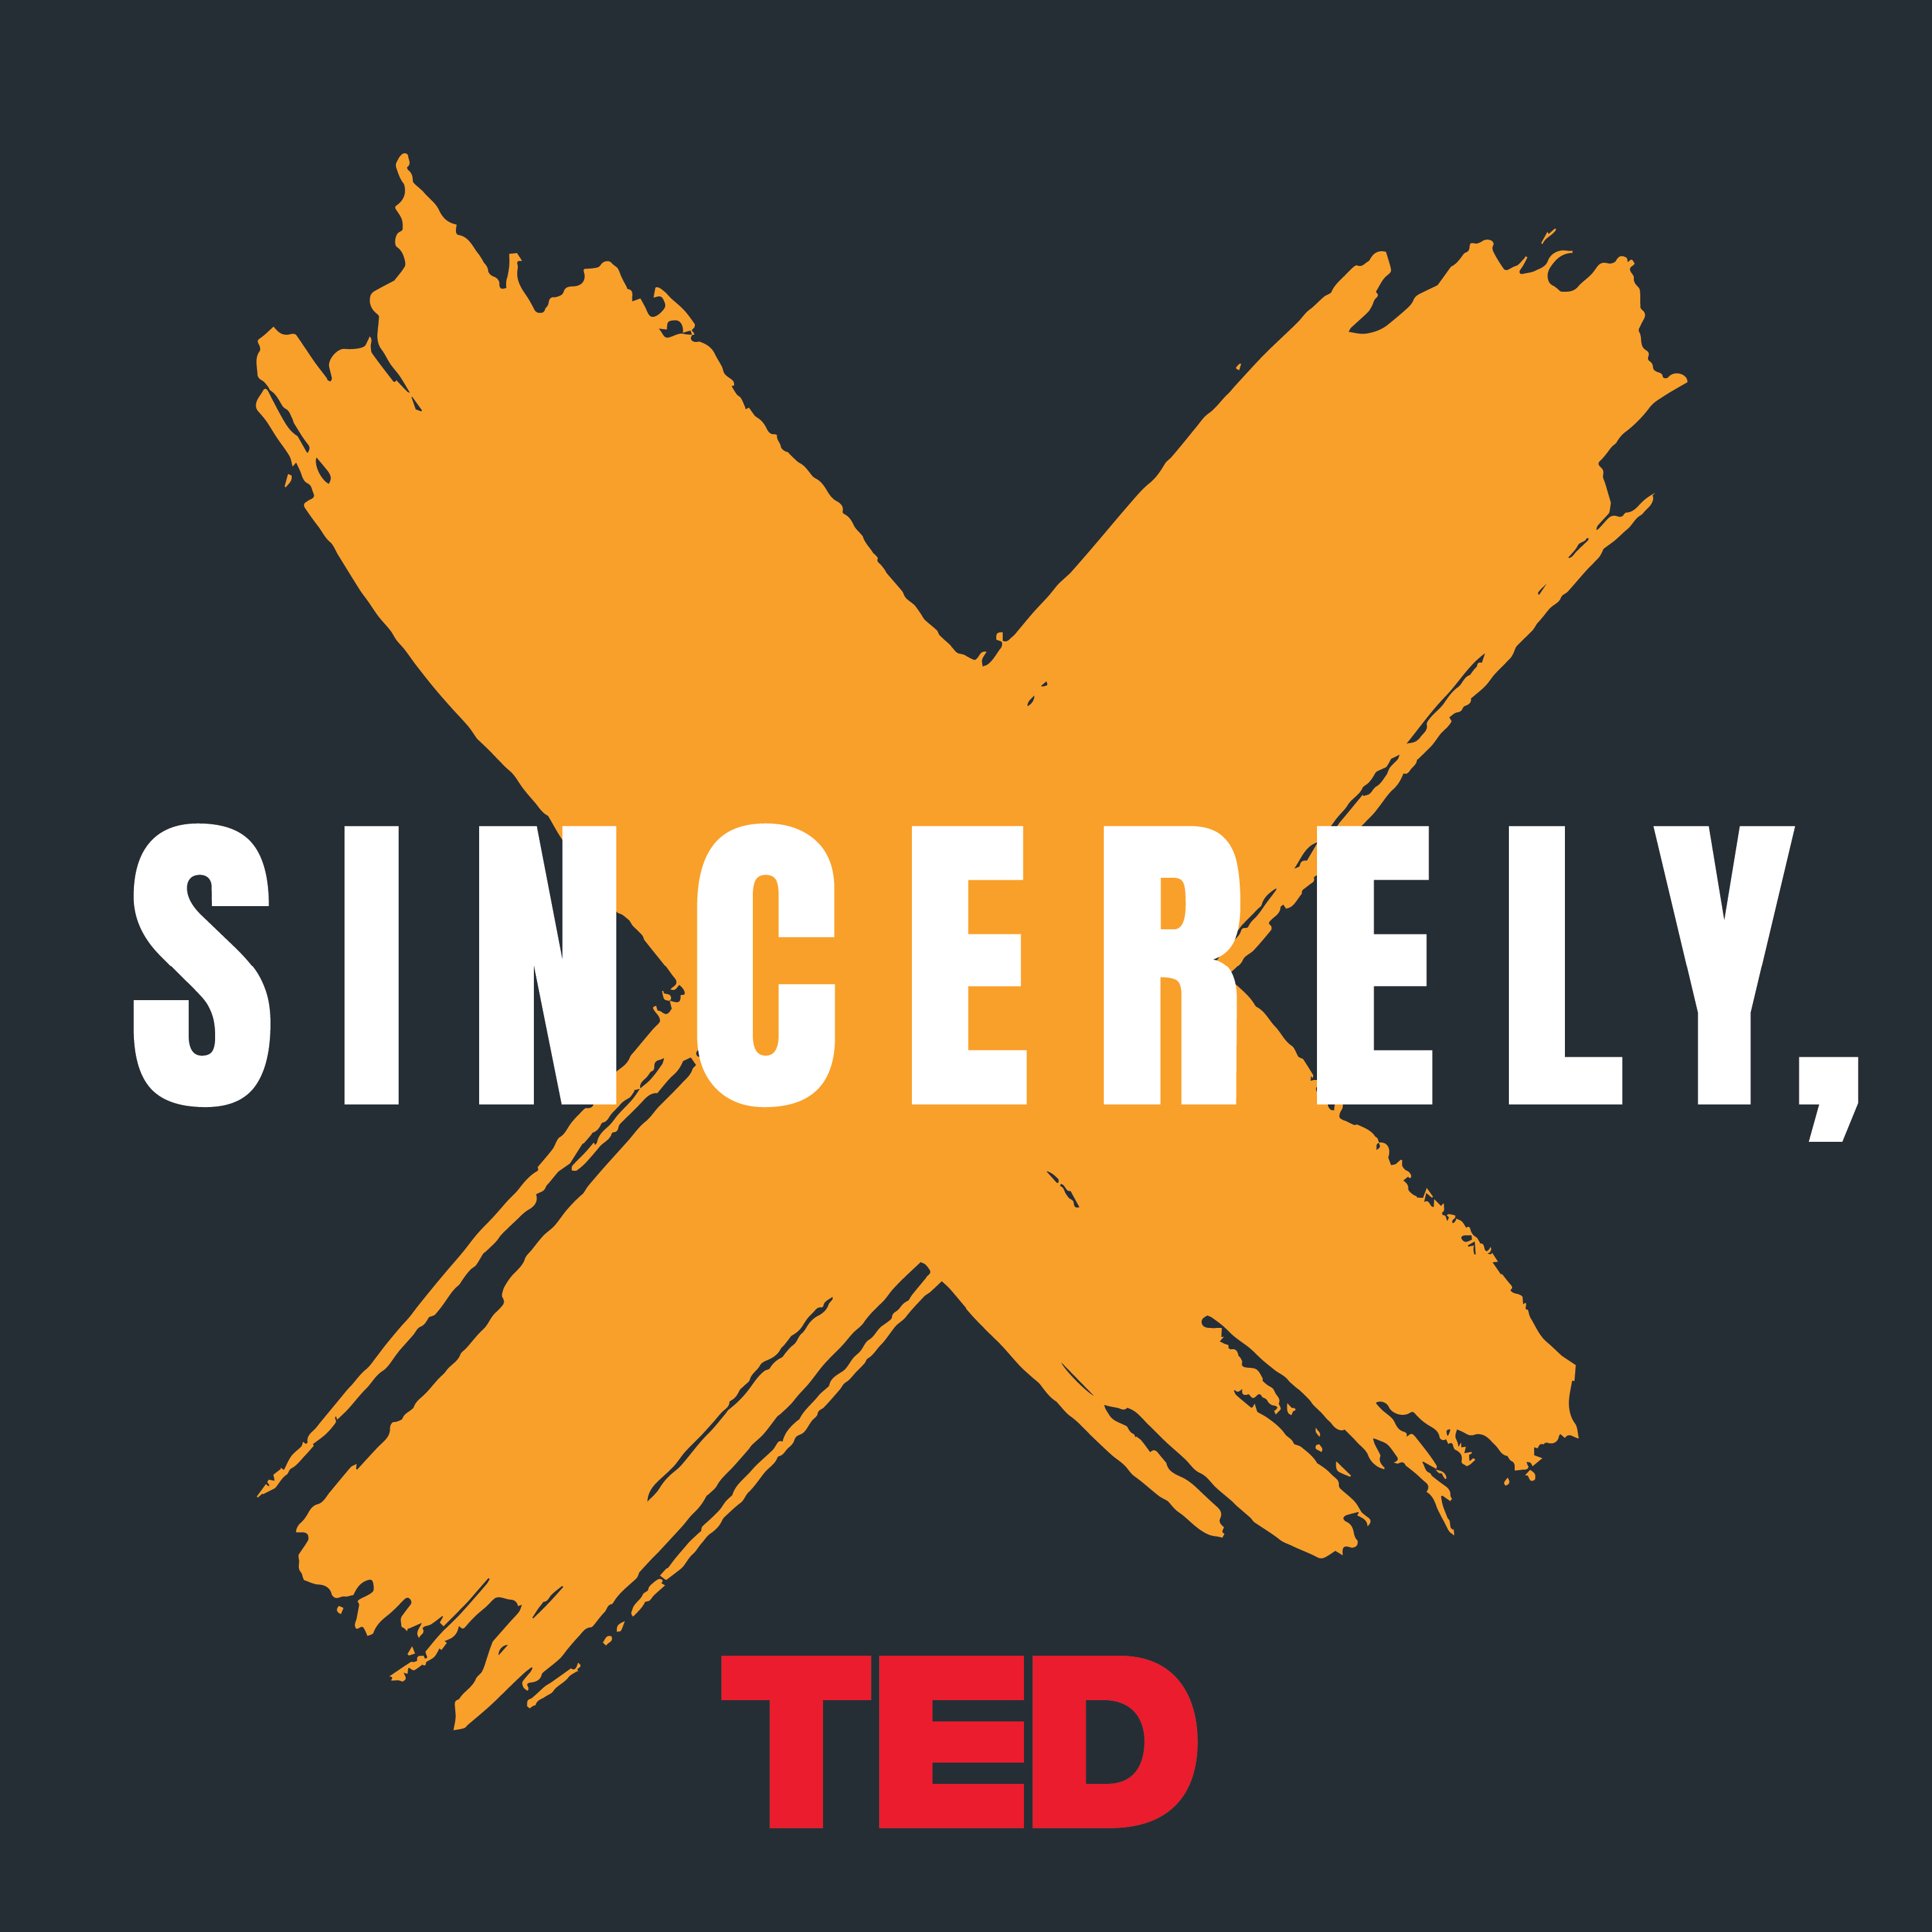 Sincerely, X from TED